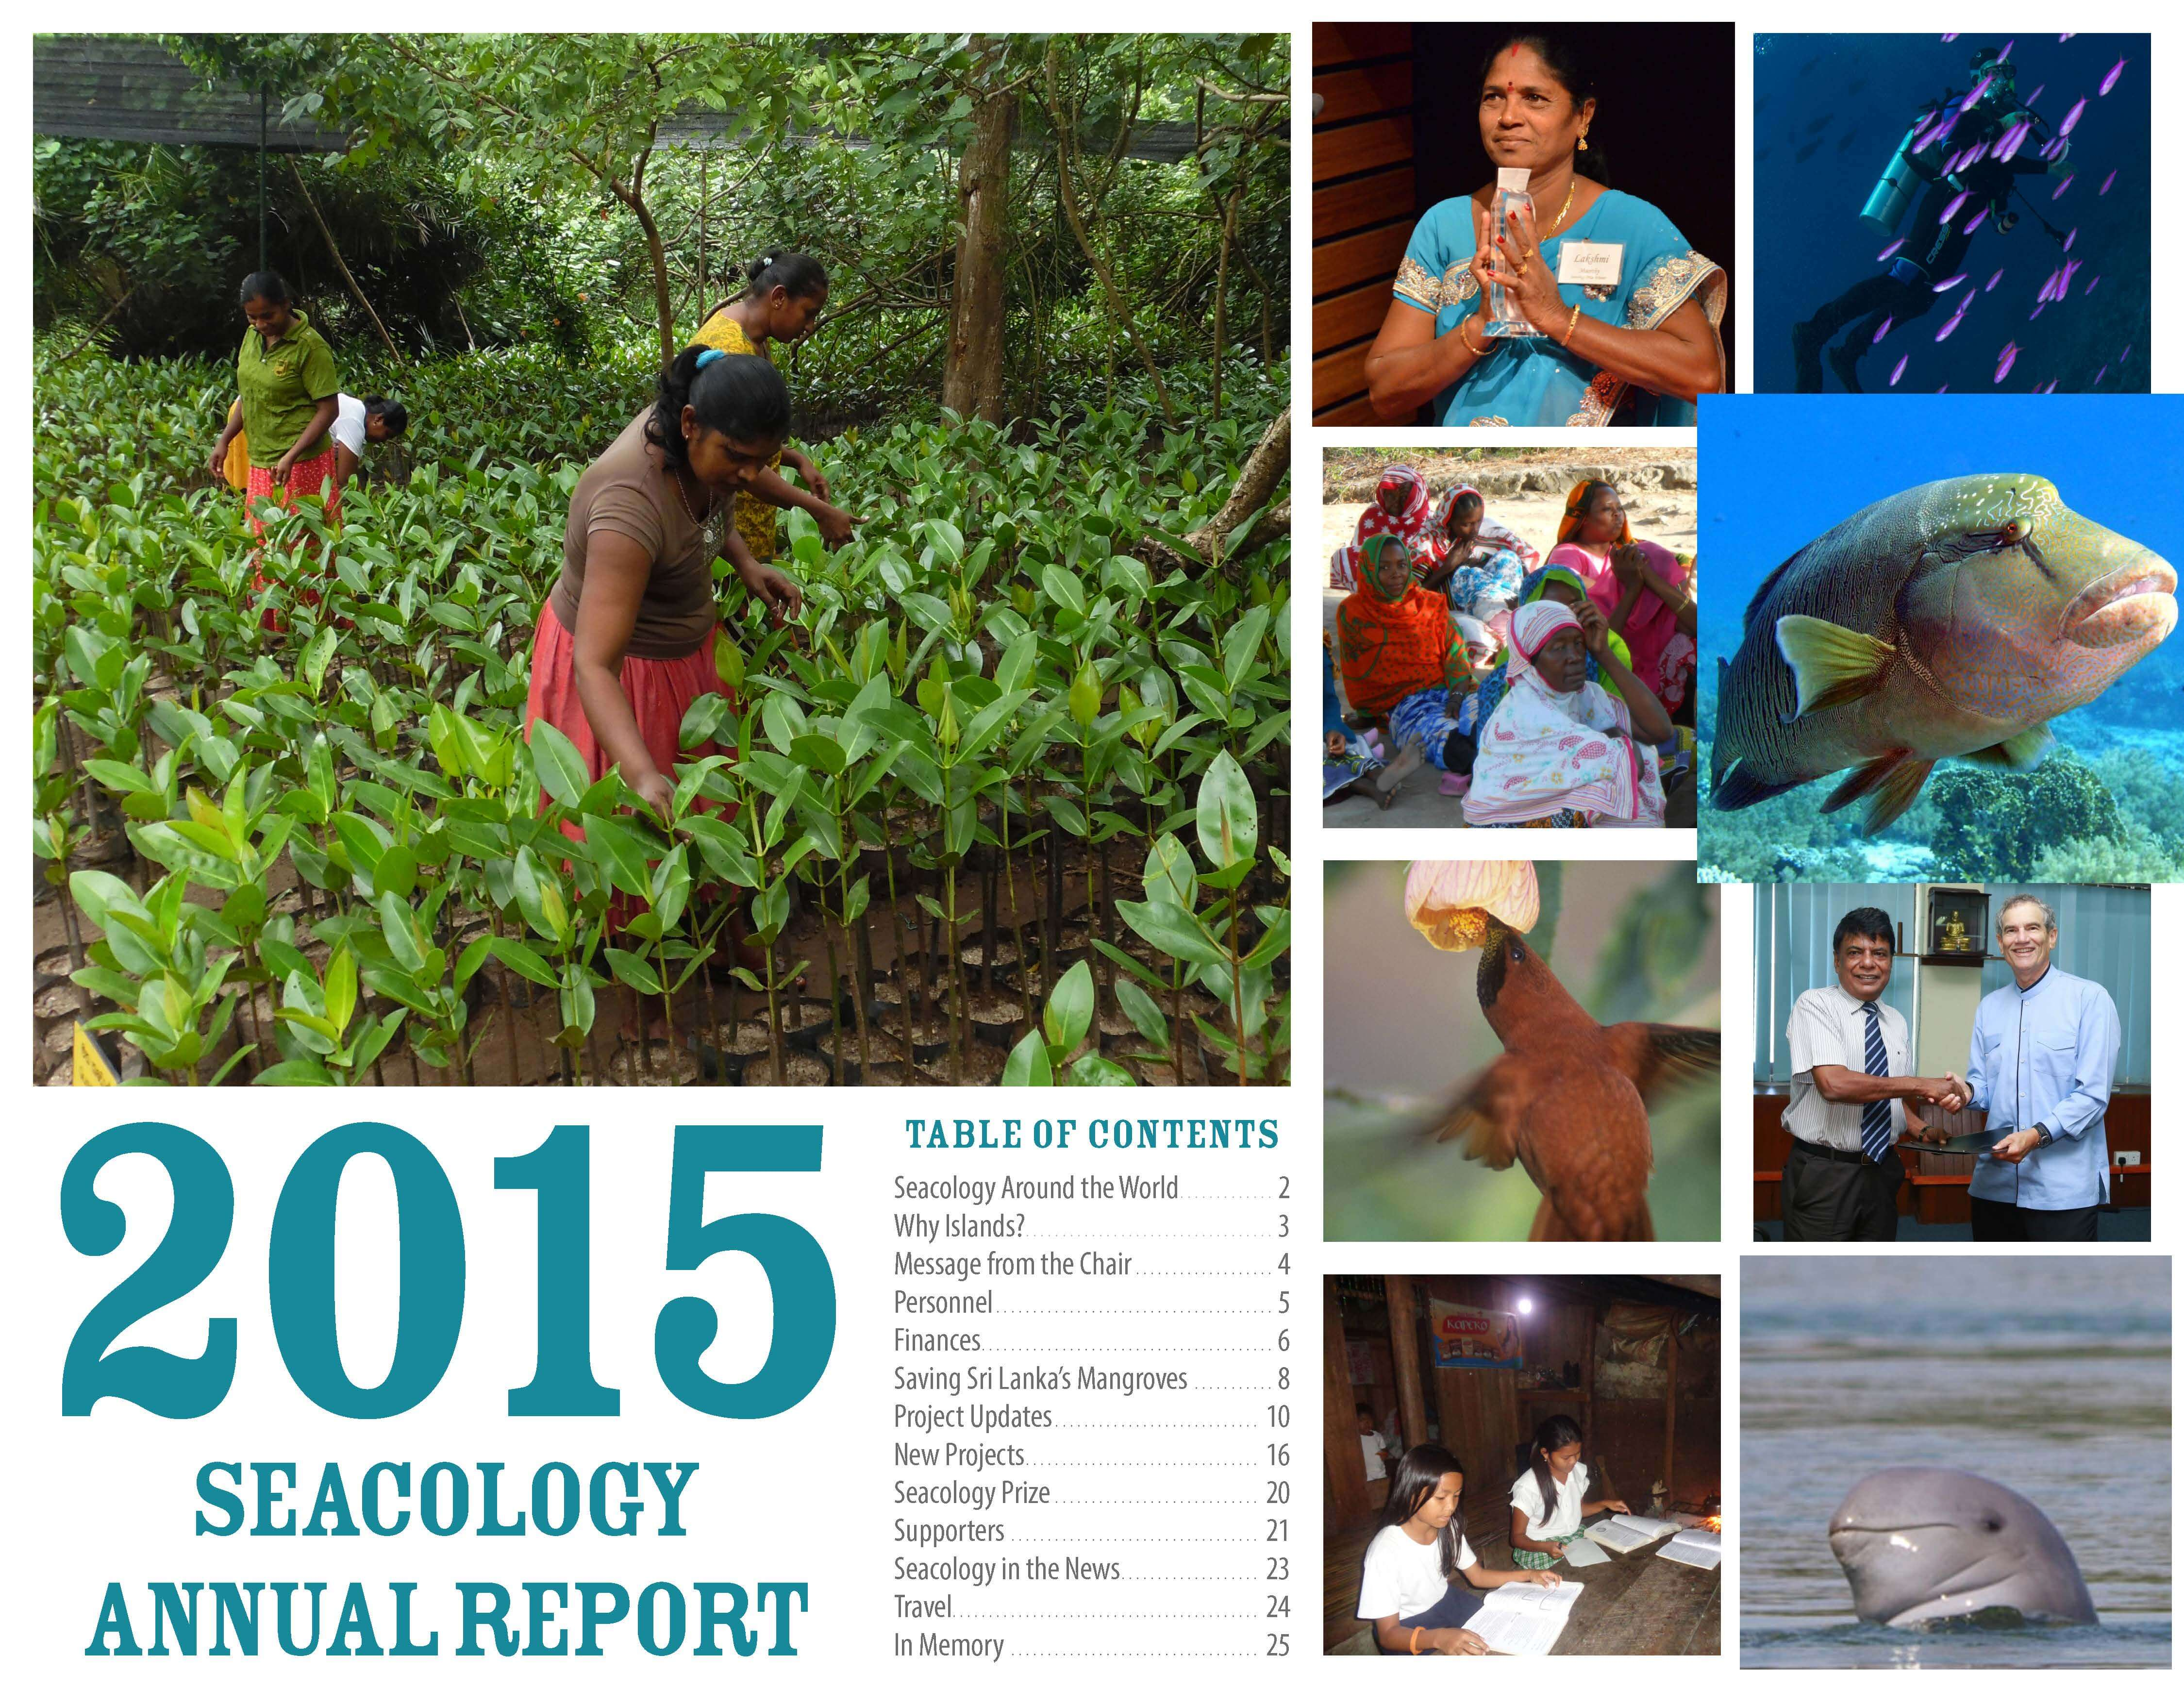 2015 Seacology Annual Report